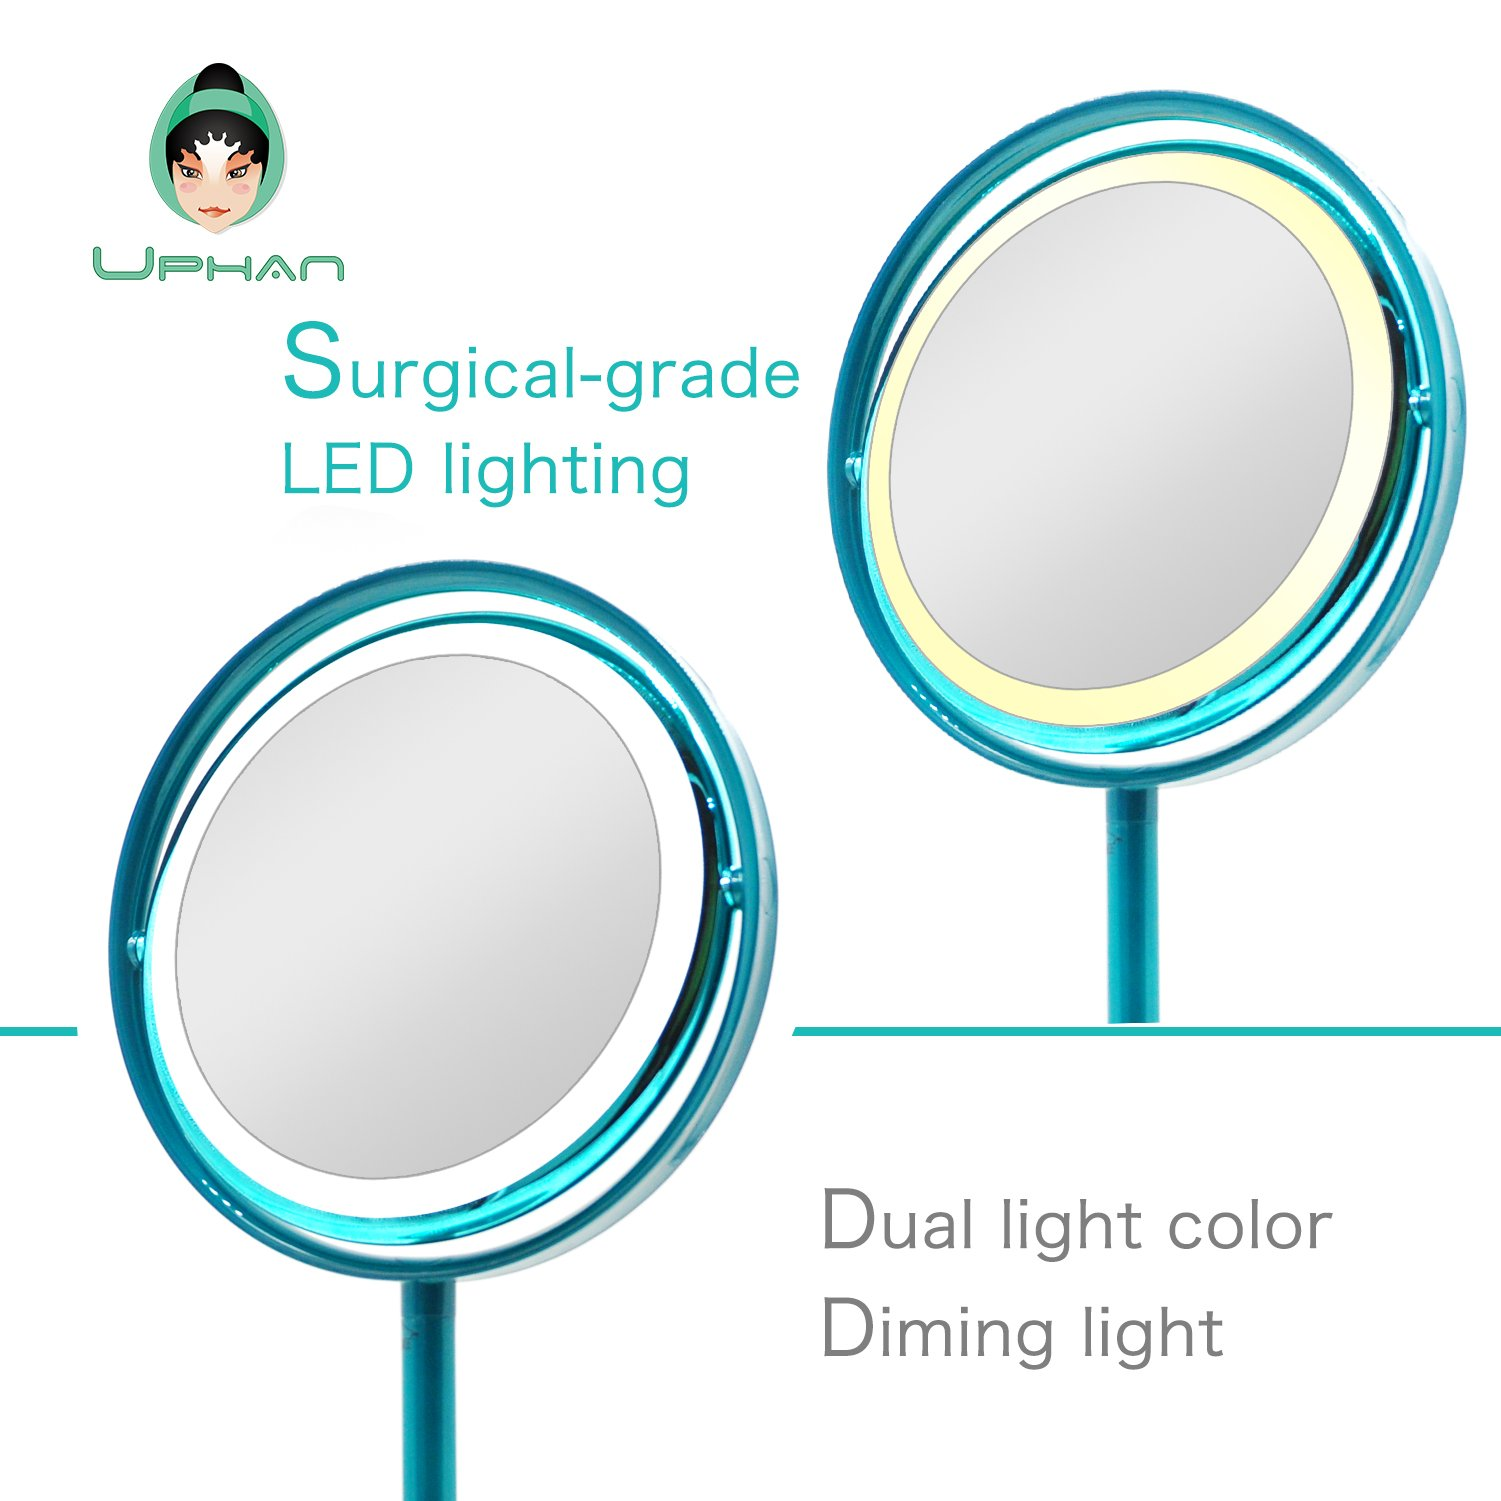 UPHAN U7 Surgical Grade Lighted Makeup Mirrors, 7 inch Luxury Dual Light Color Dimming Light with 5X Detail Mirror, Malachite green ¡­ (Surgical Grade) by UPHAN (Image #3)